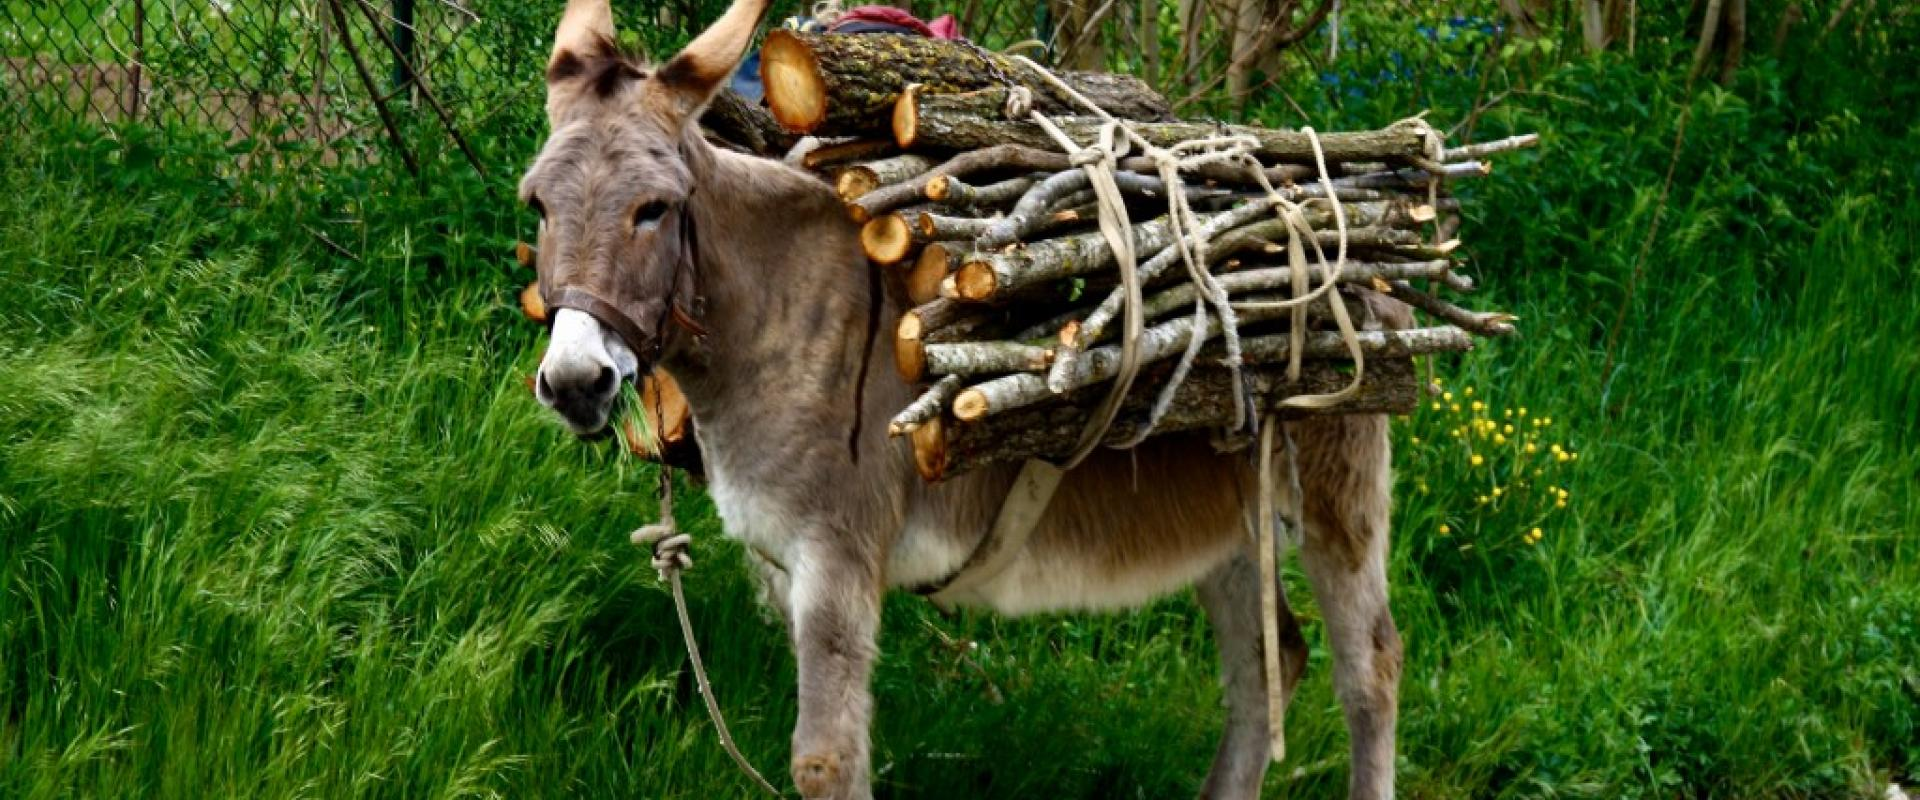 Hiking experience with donkey in the Capestrano valley